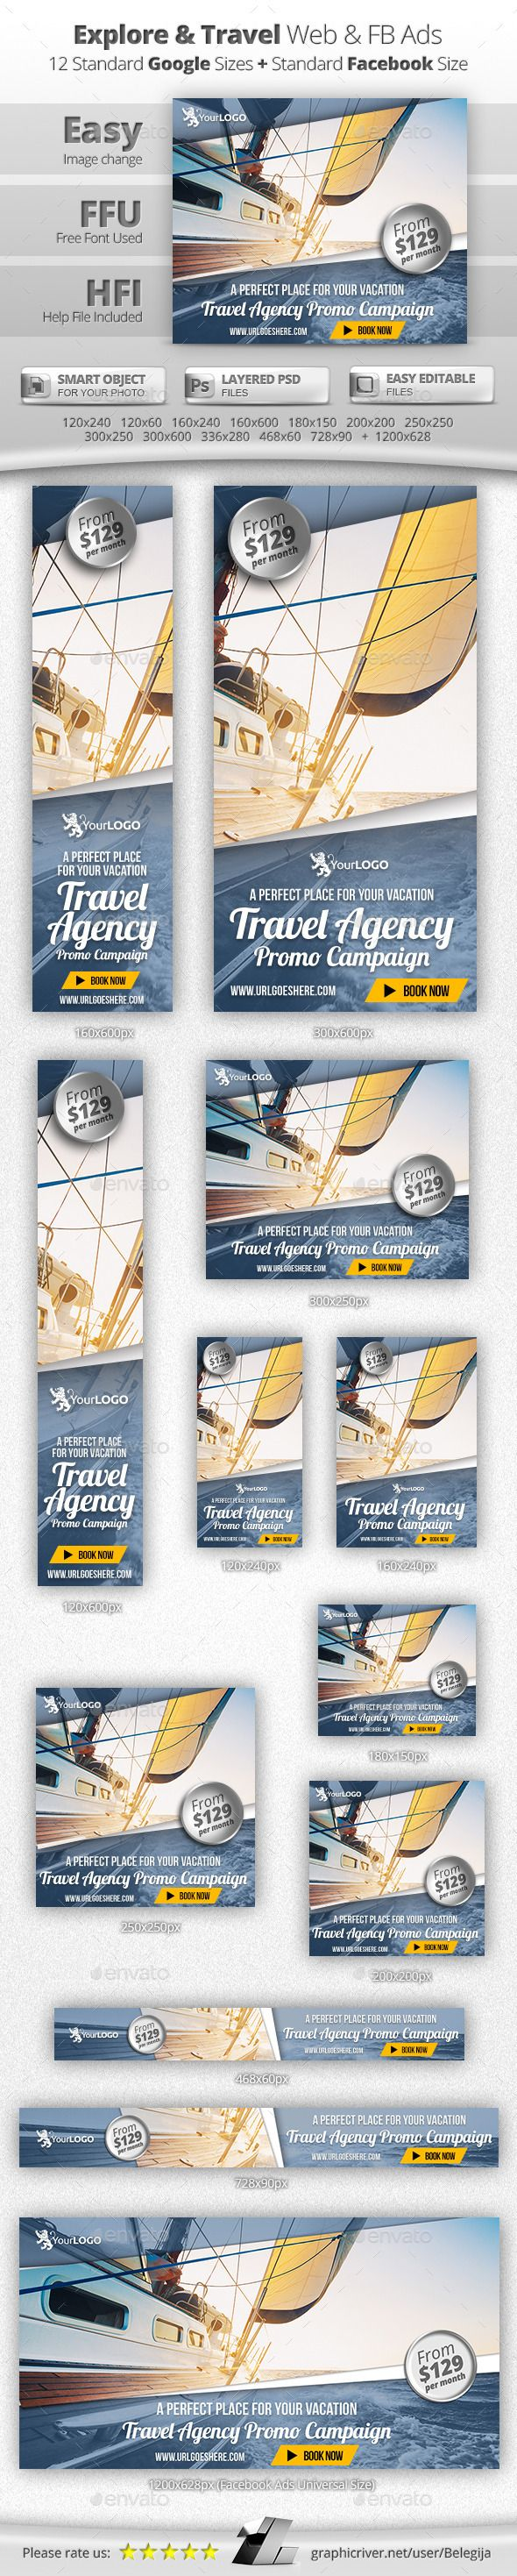 Explore & Travel Web & Facebook Banners Template PSD #design #ads Download: http://graphicriver.net/item/explore-travel-web-facebook-banners/13182391?ref=ksioks